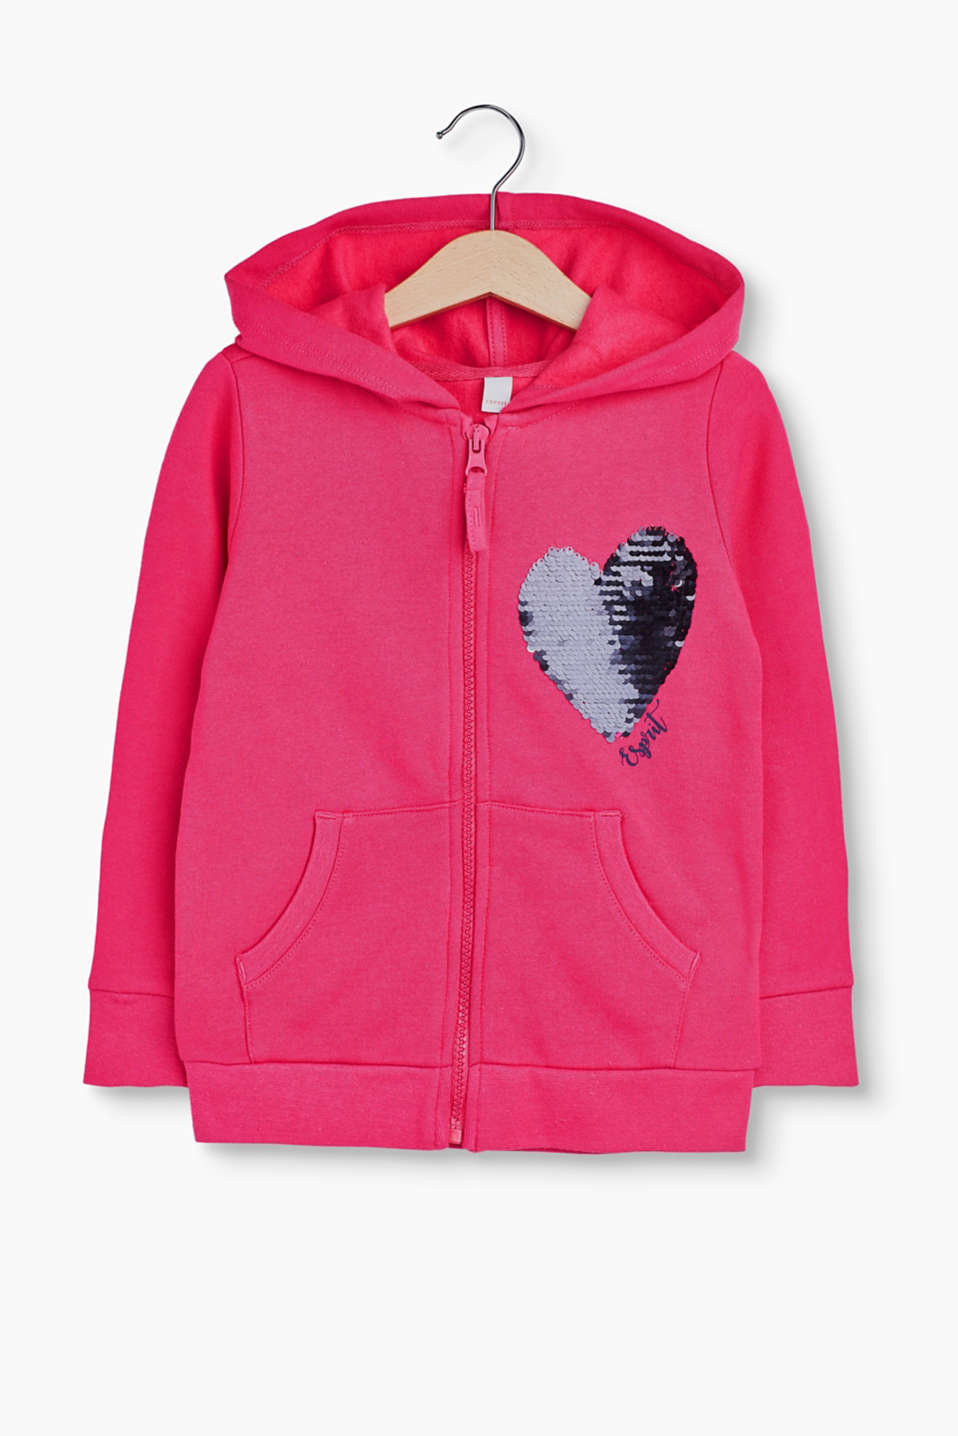 This hoodie with dazzling reversible sequins provides a touch of glamour and fun at the same time!